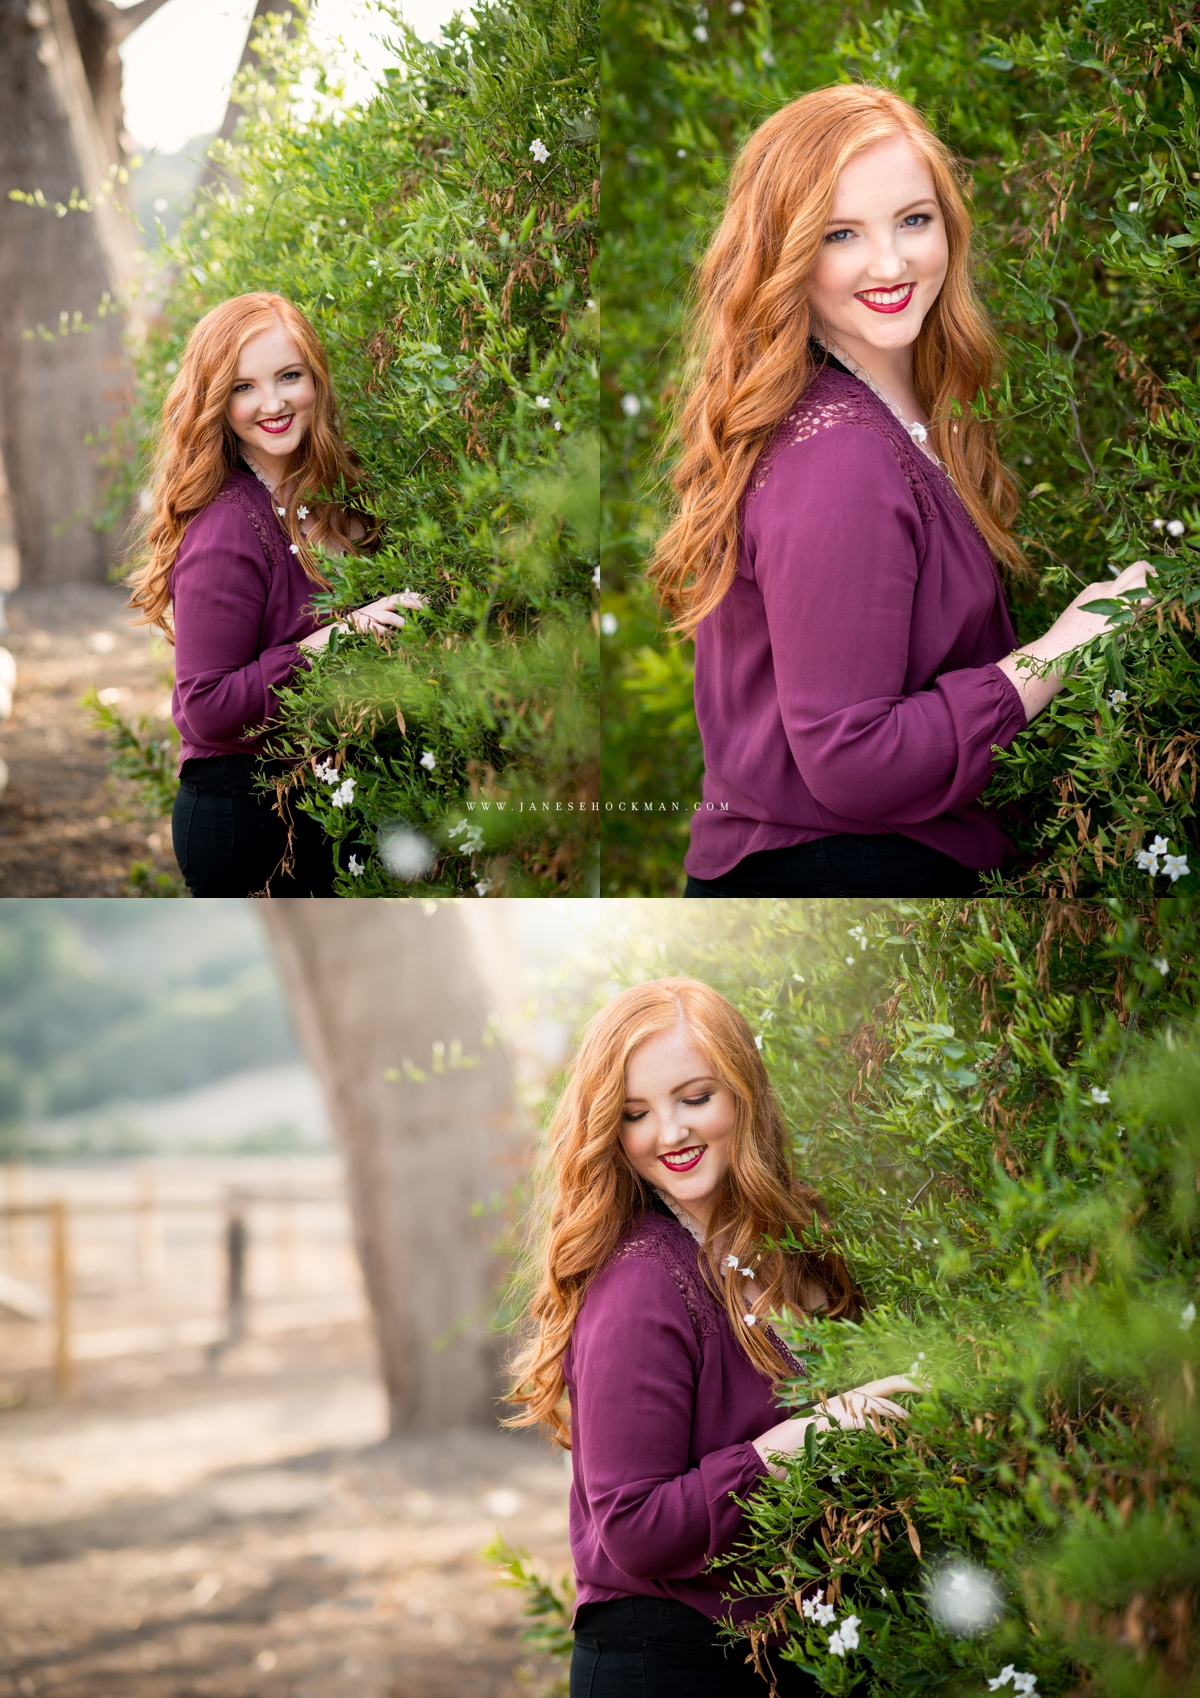 Grace-Janese Hockman Photography San Luis Obispo High School Senior Portraits 2.jpg